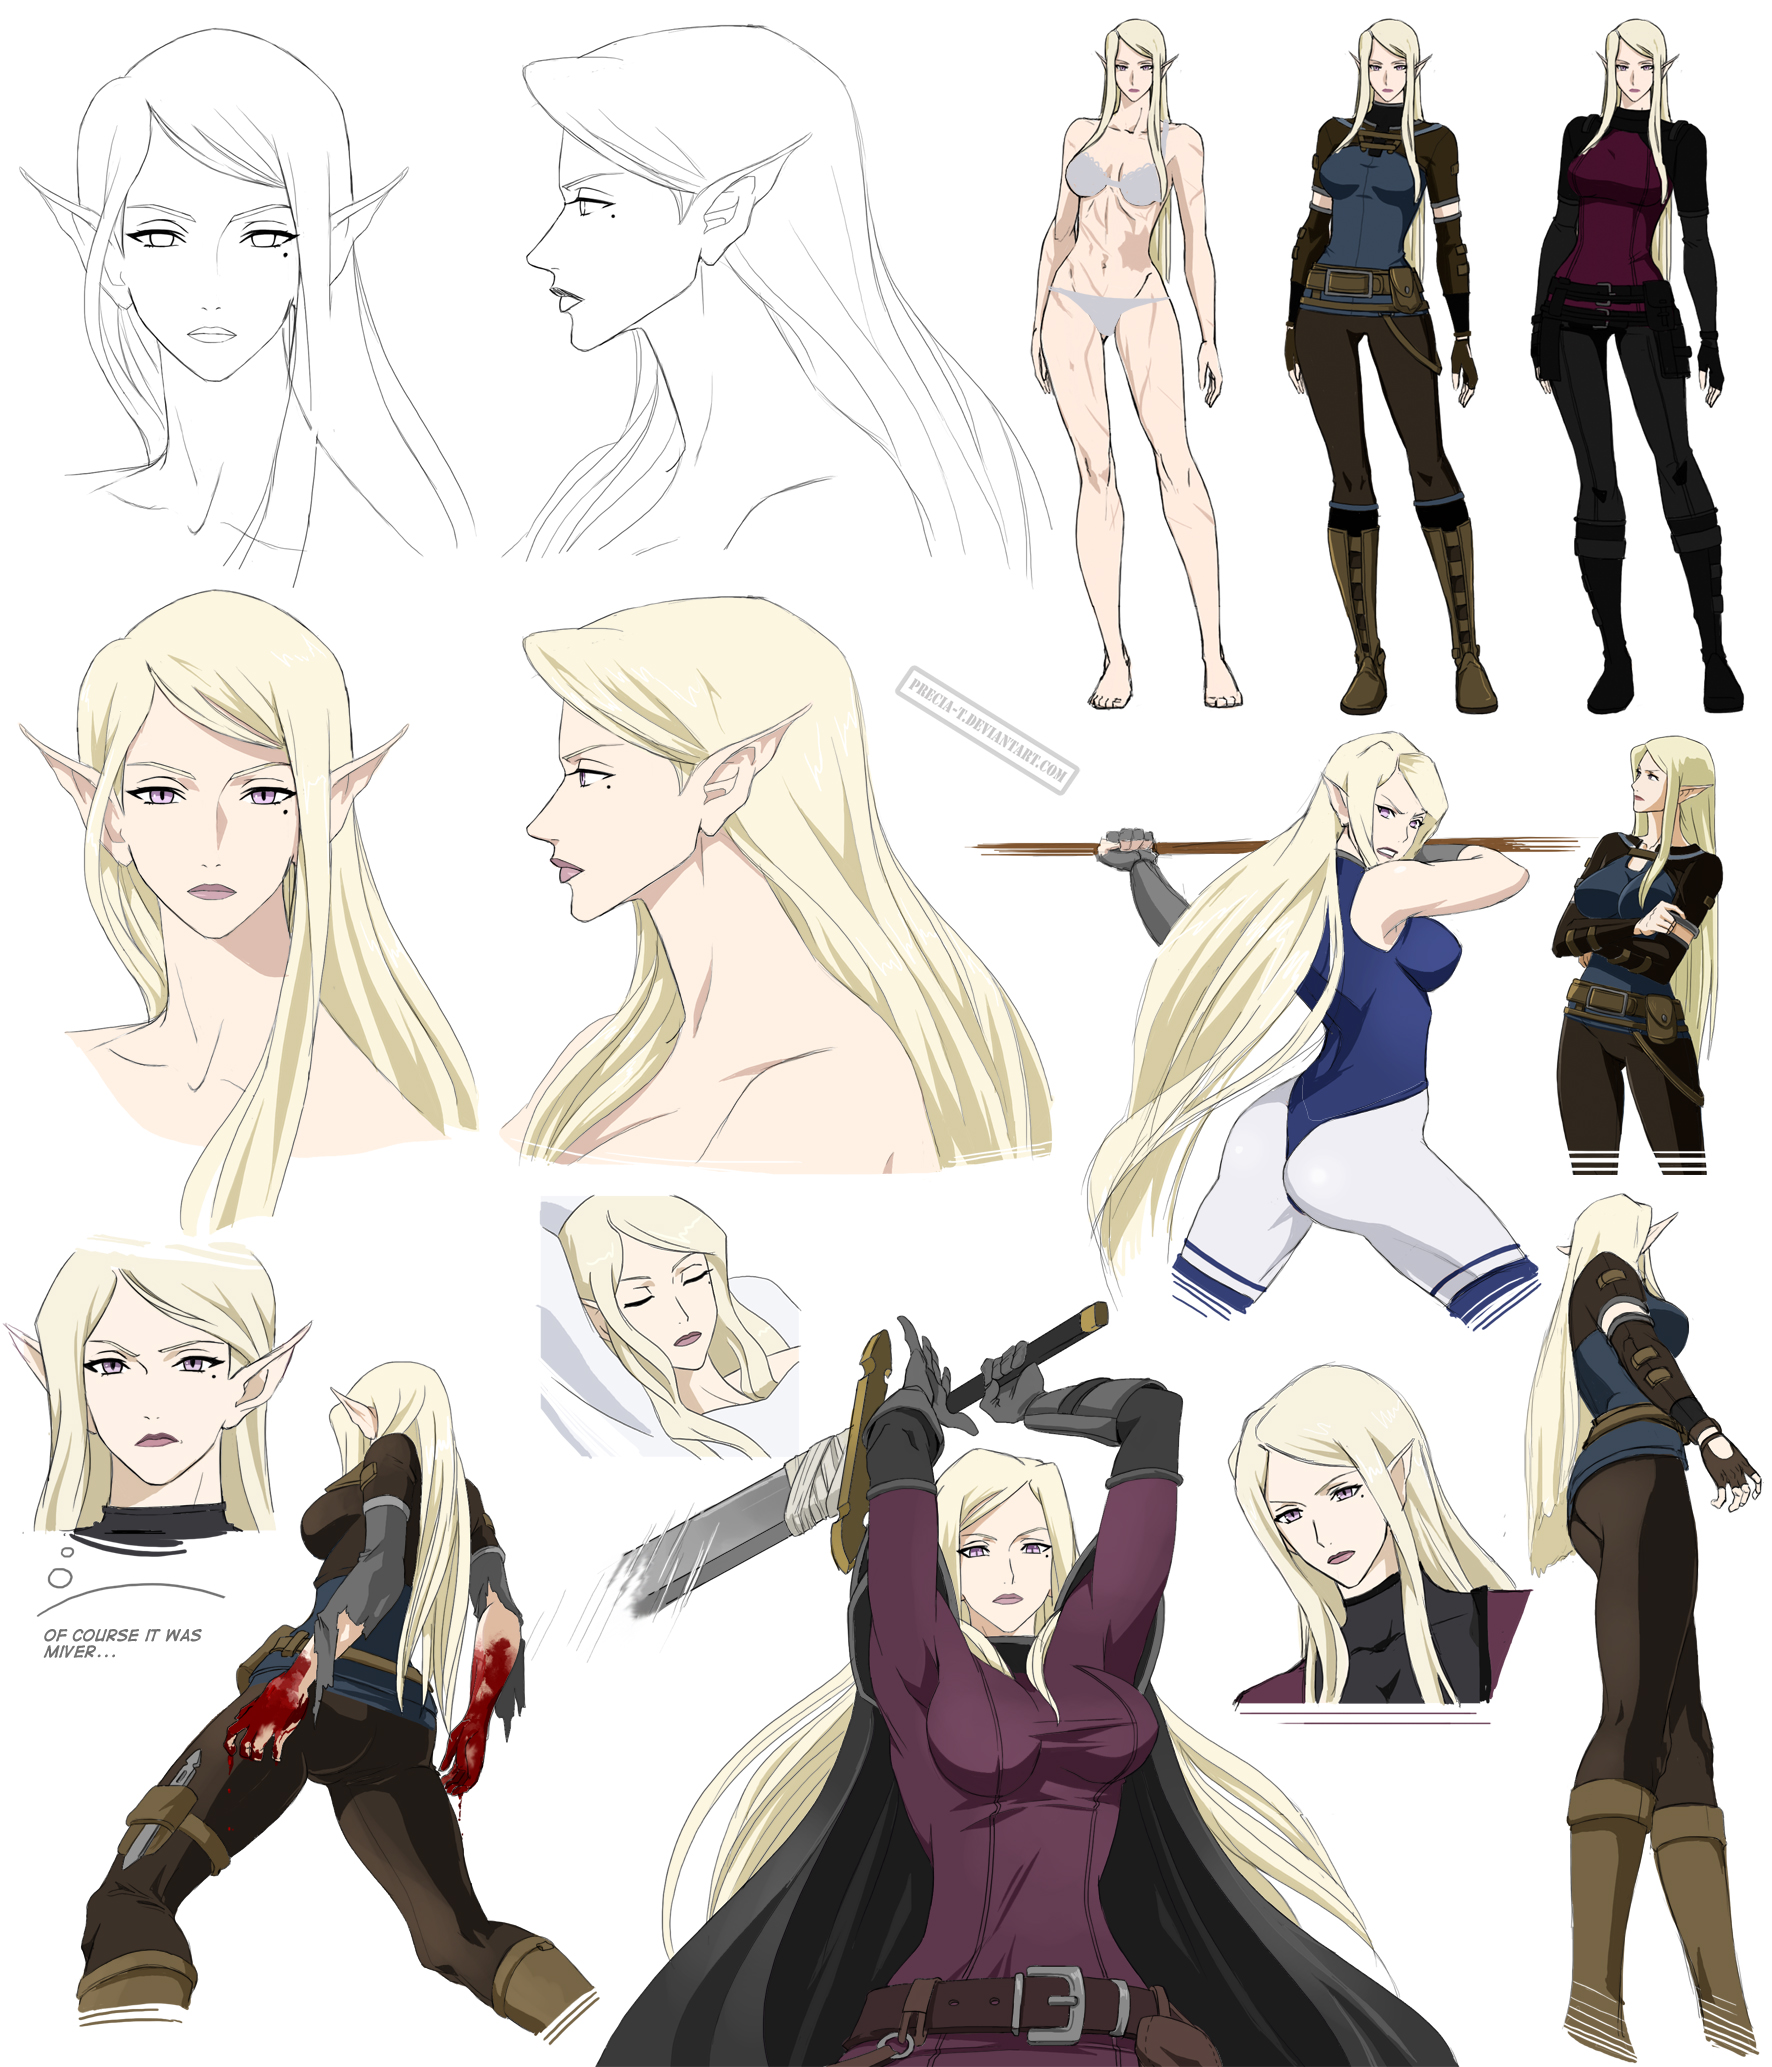 Character Design Deviantart : Targa the main character design nebula by precia t on